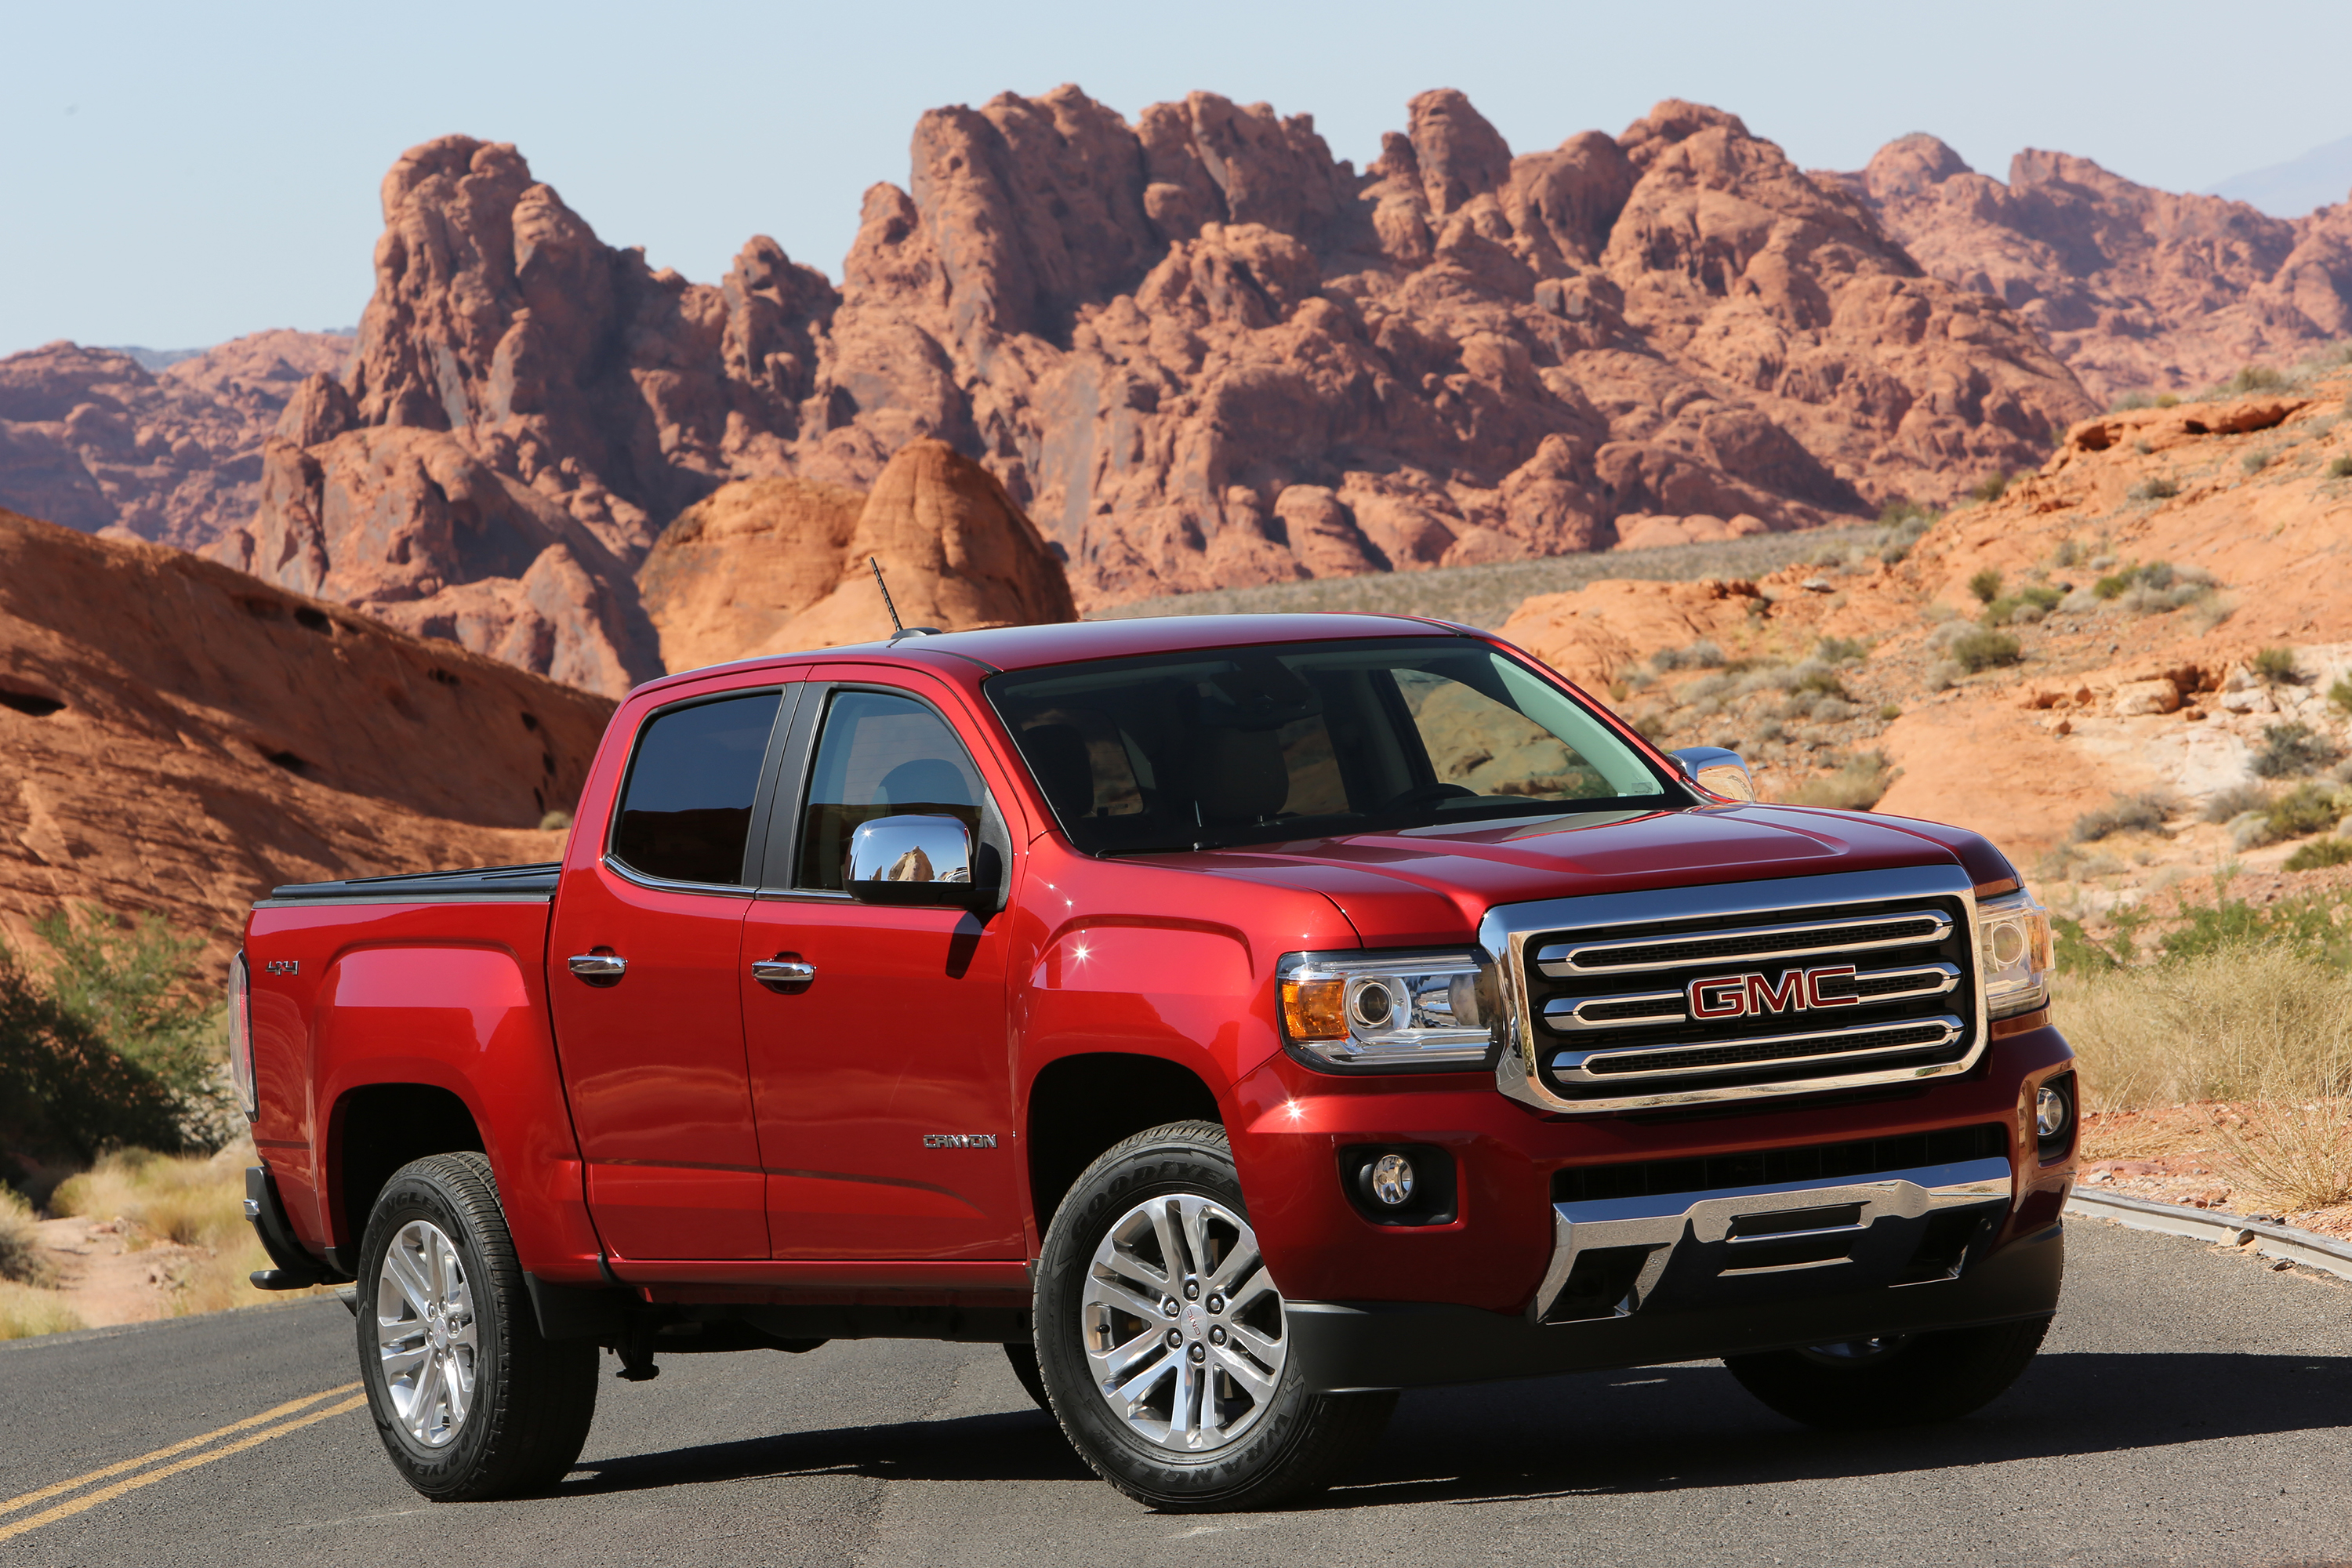 resale en home dec gmc sierra media pickup ranked highest for news among us detail pages content canyon and